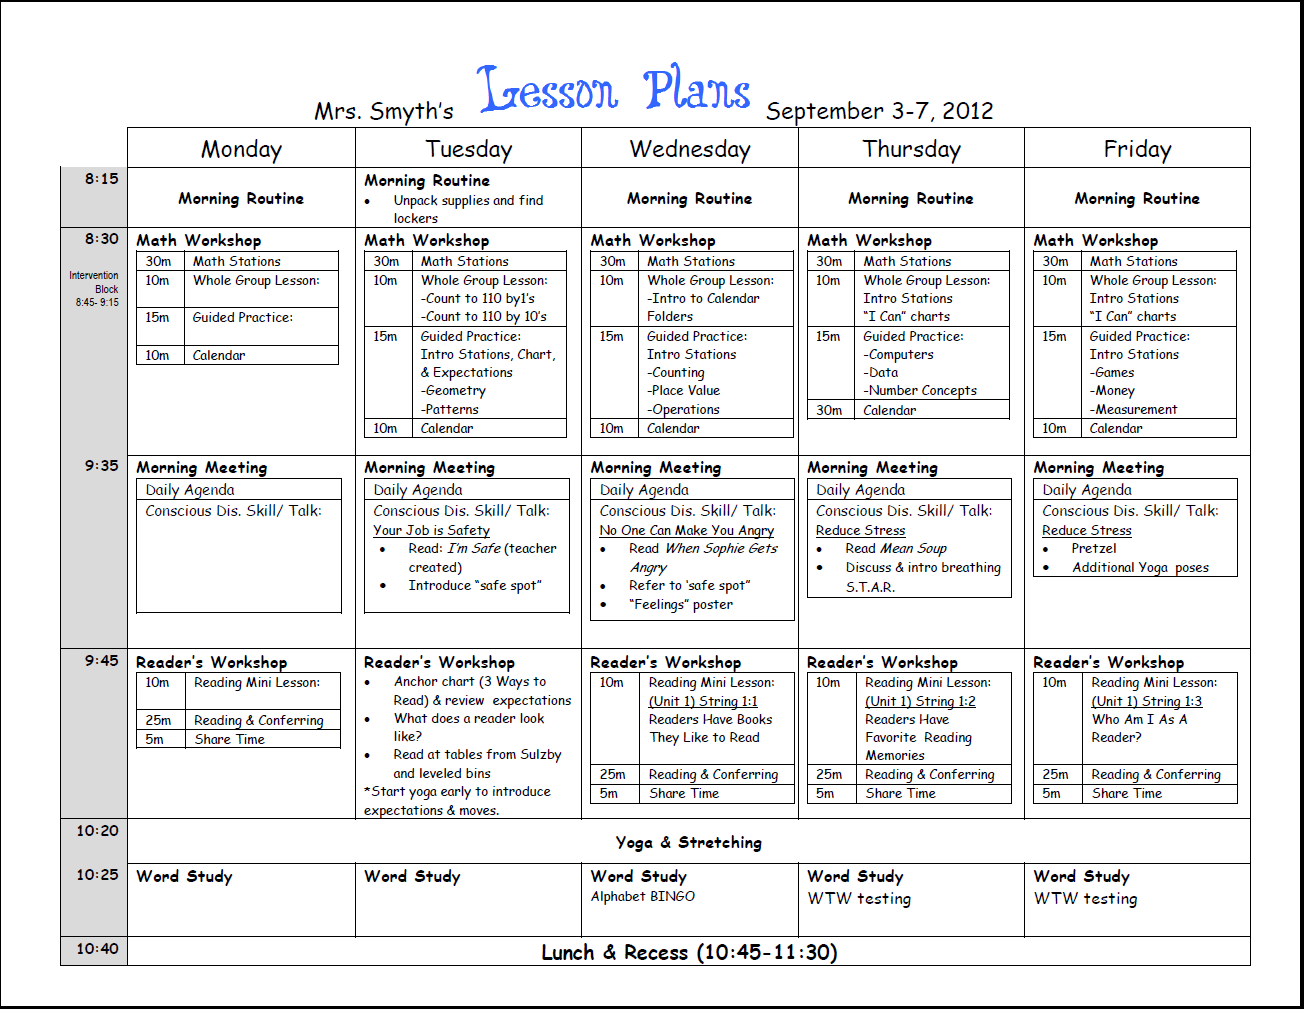 FREE Weekly Lesson Plan Template And Teacher Resources - Project based learning lesson plan template